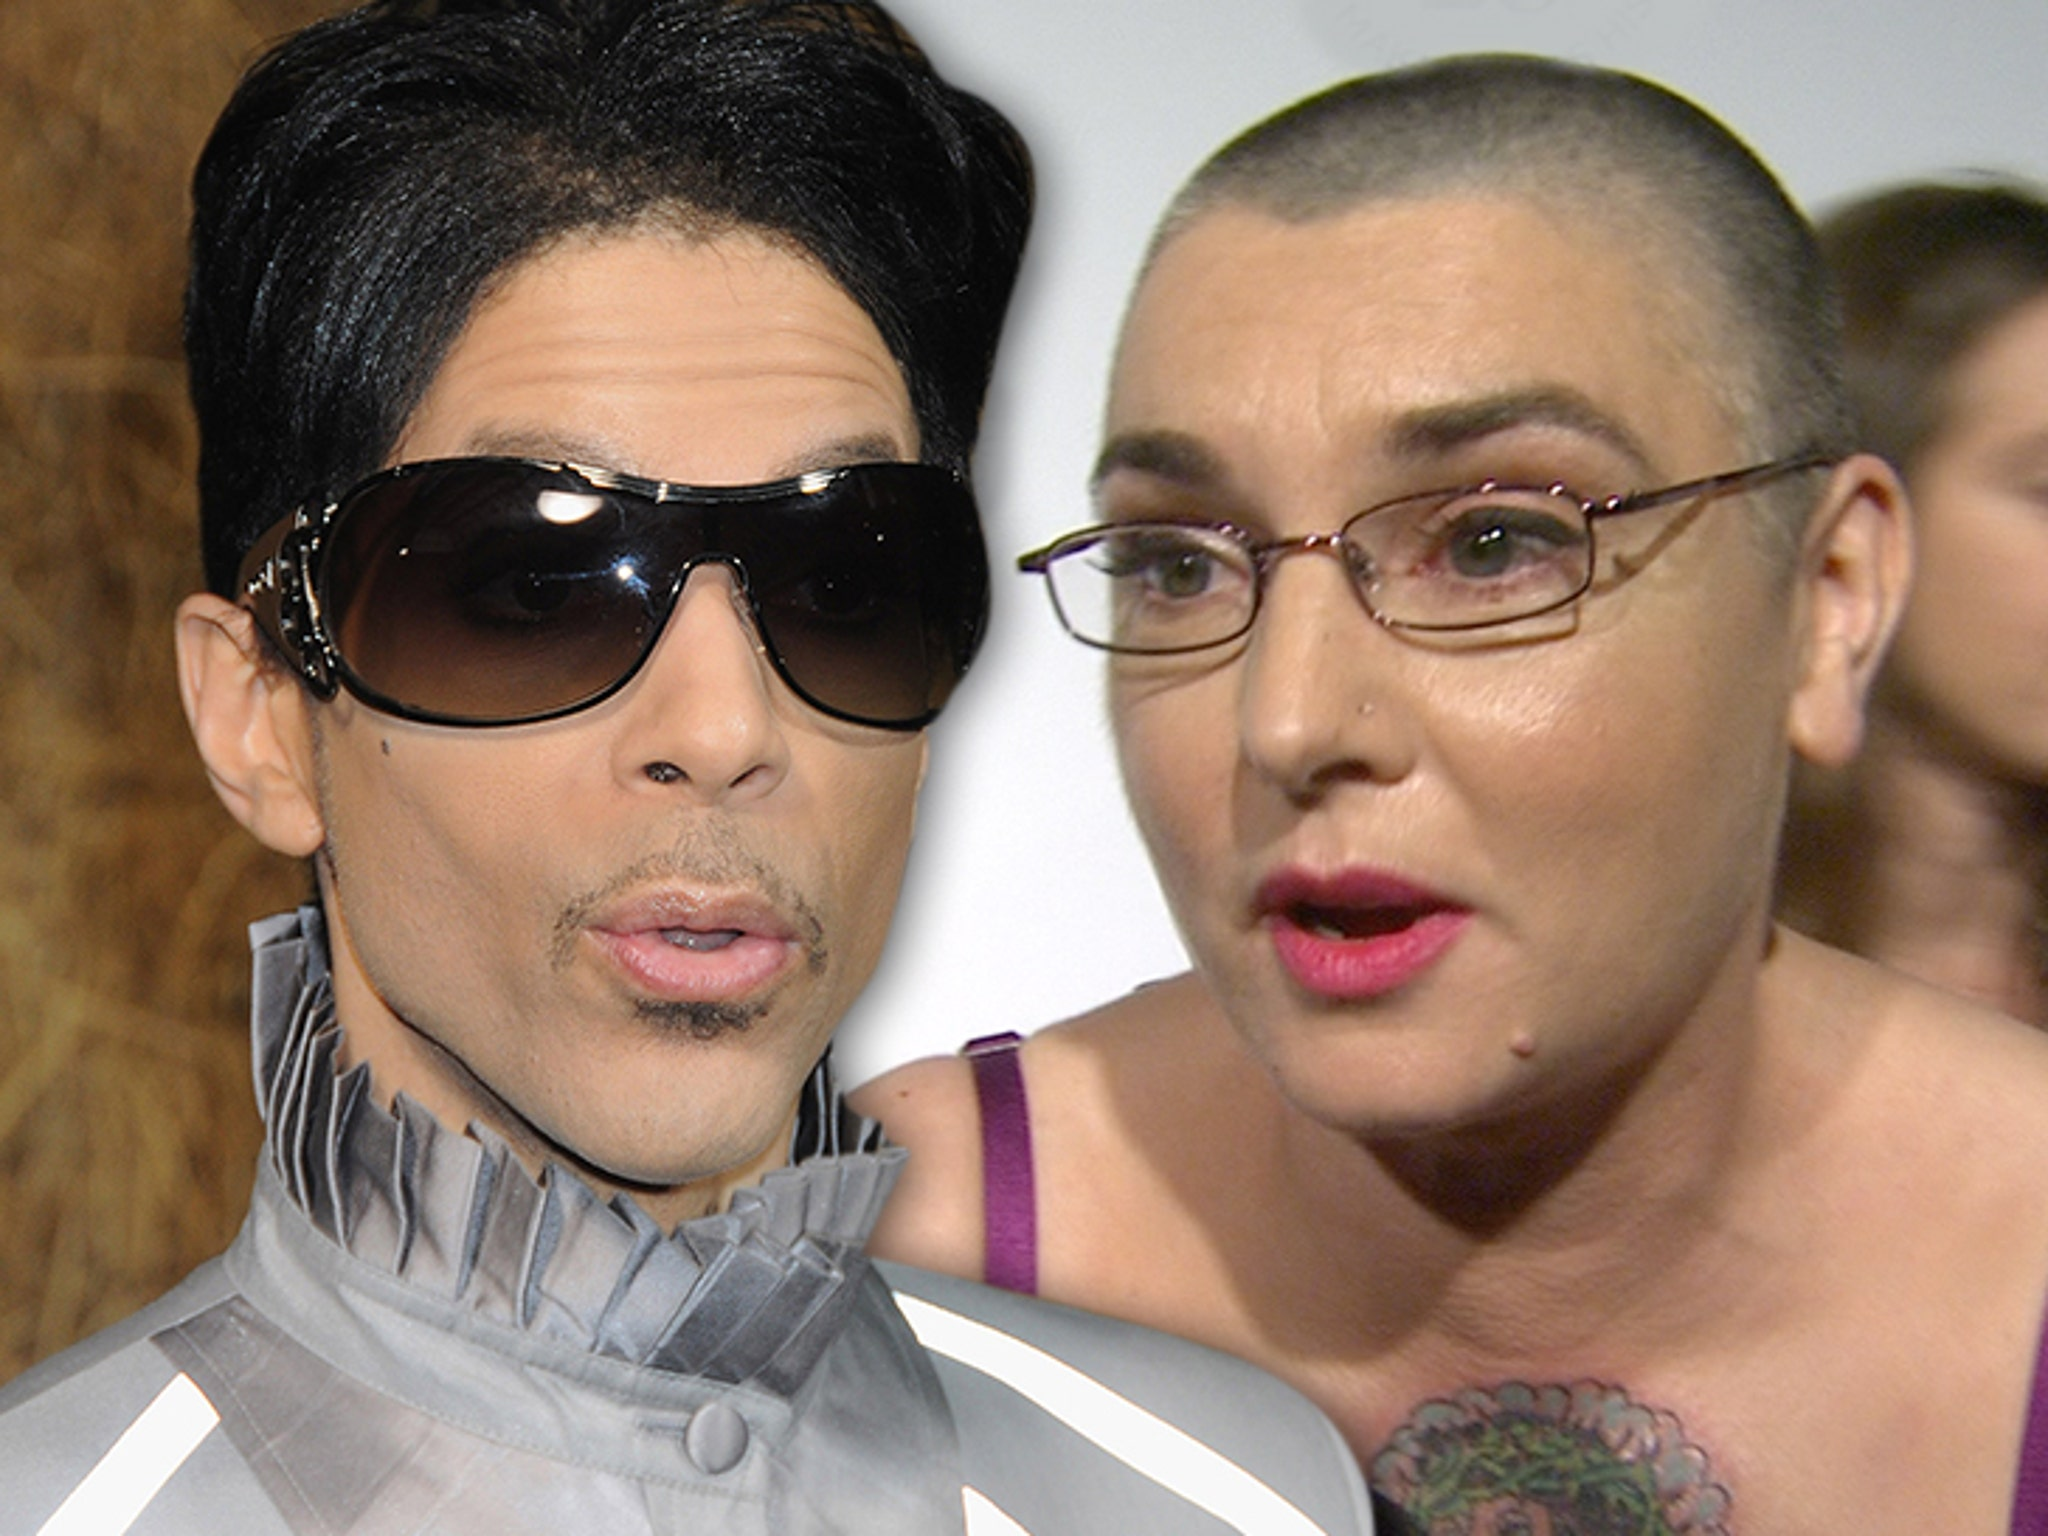 Prince's Ex-Wife Mayte Garcia Slams Sinead O'Connor for Violence